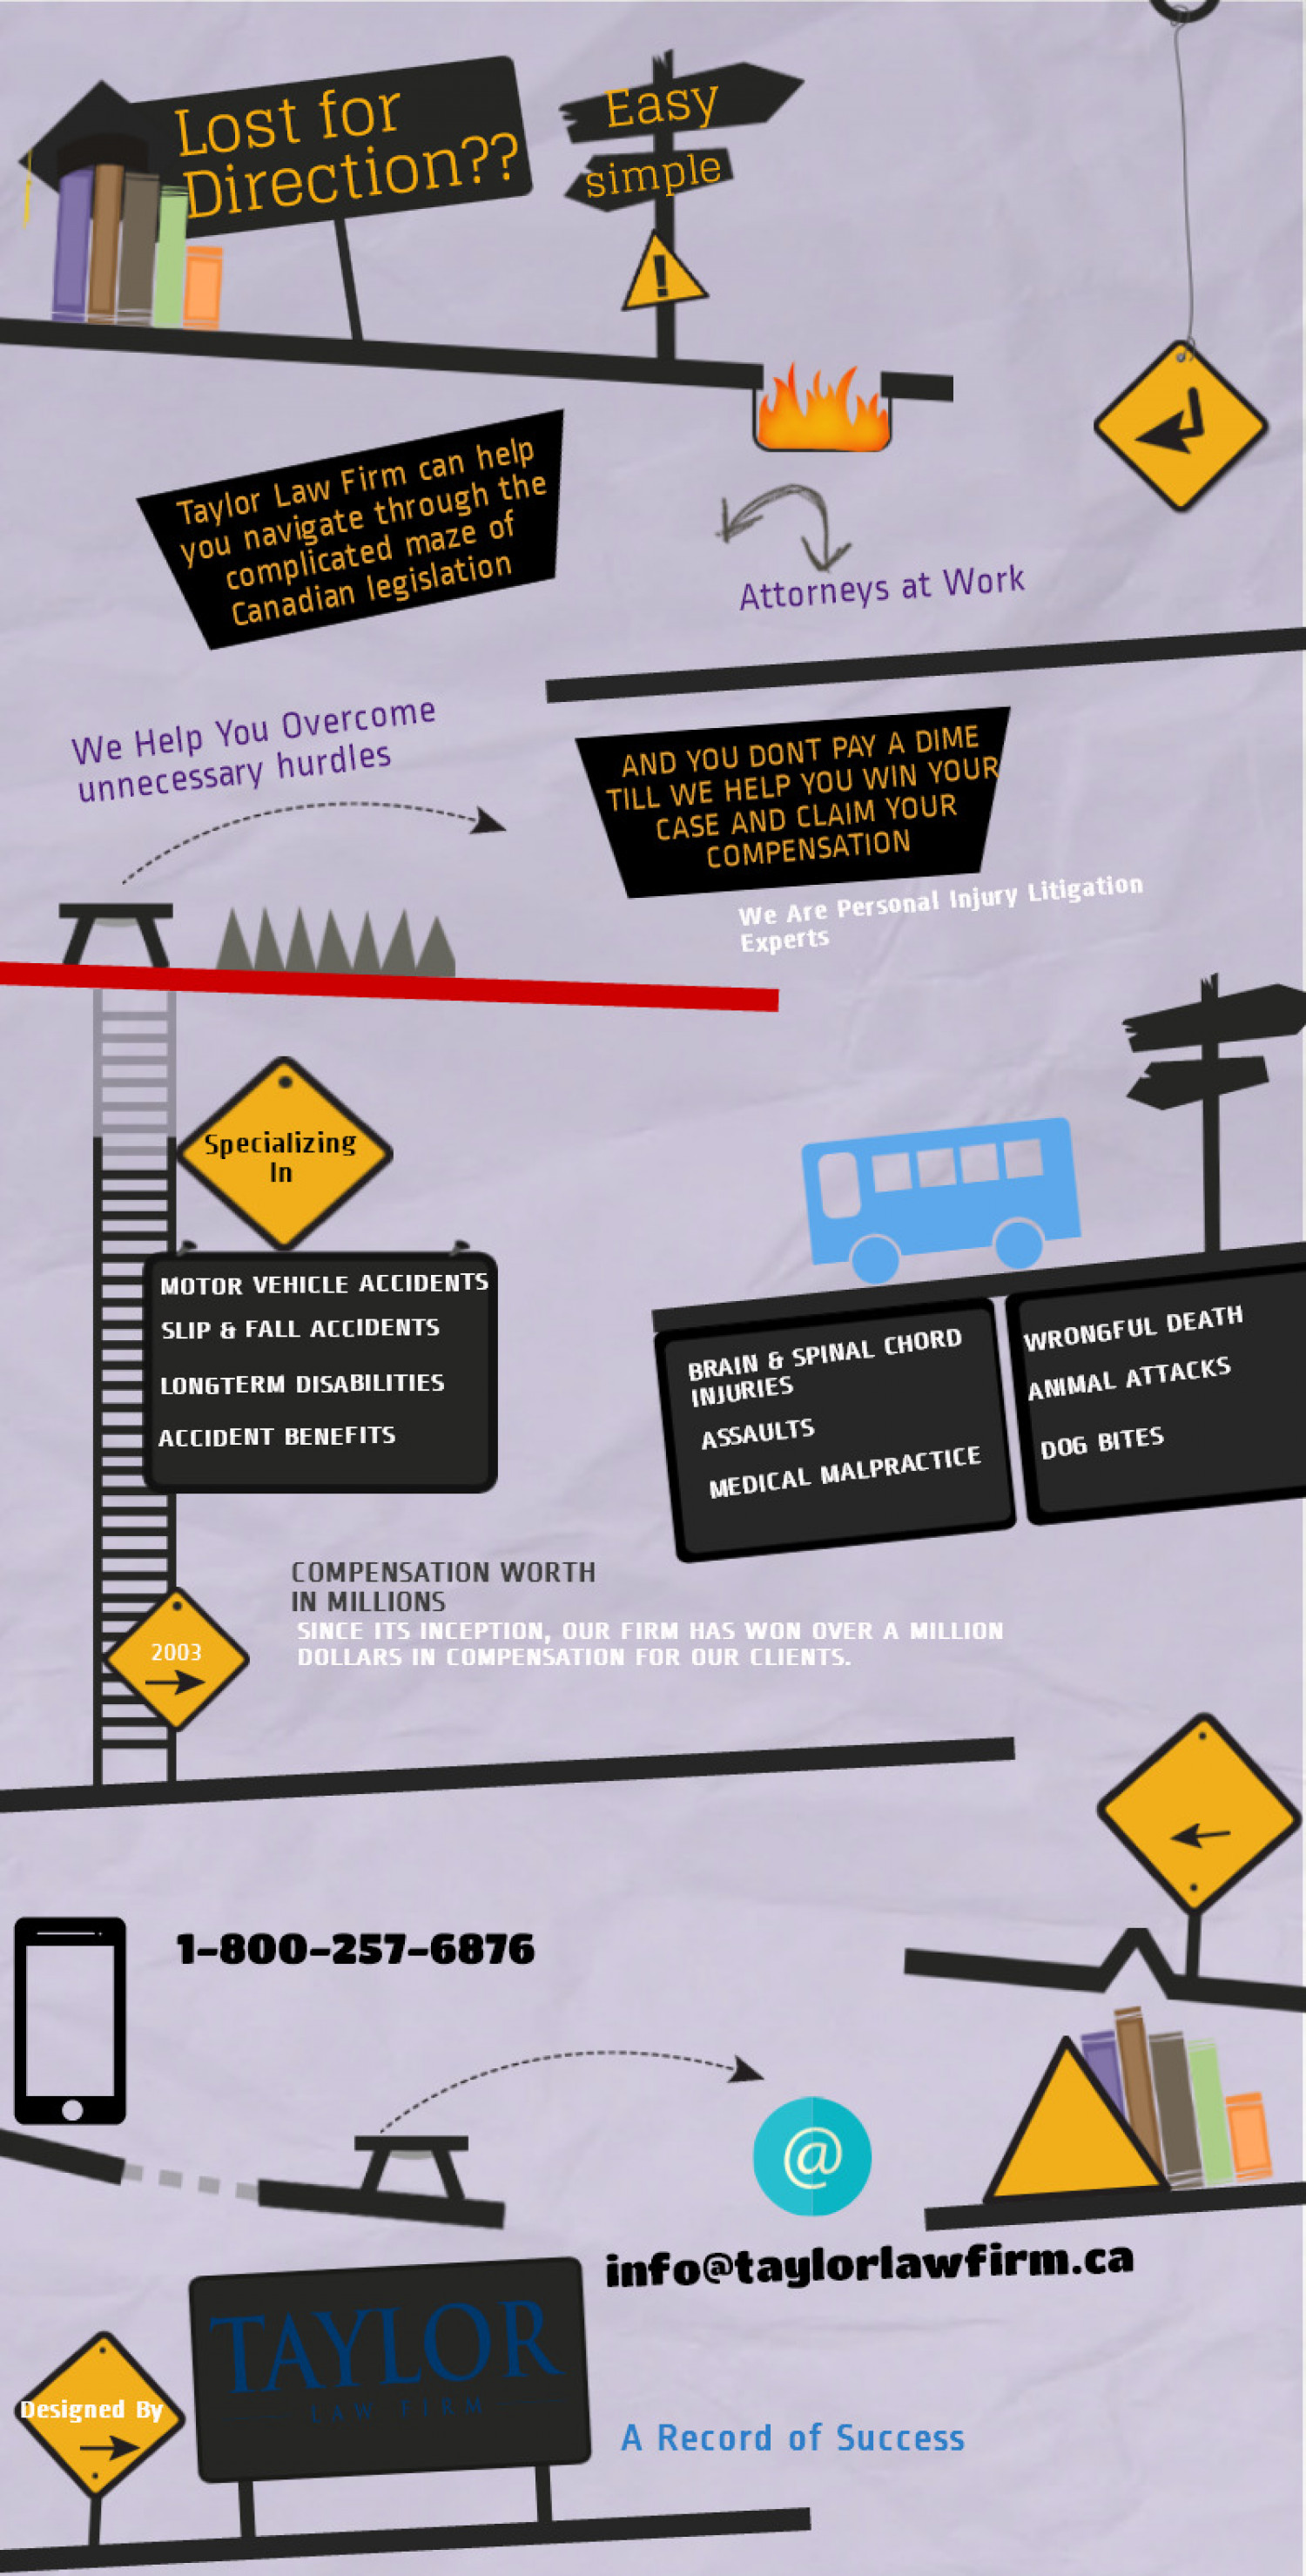 Taylor Law Firm Infographic